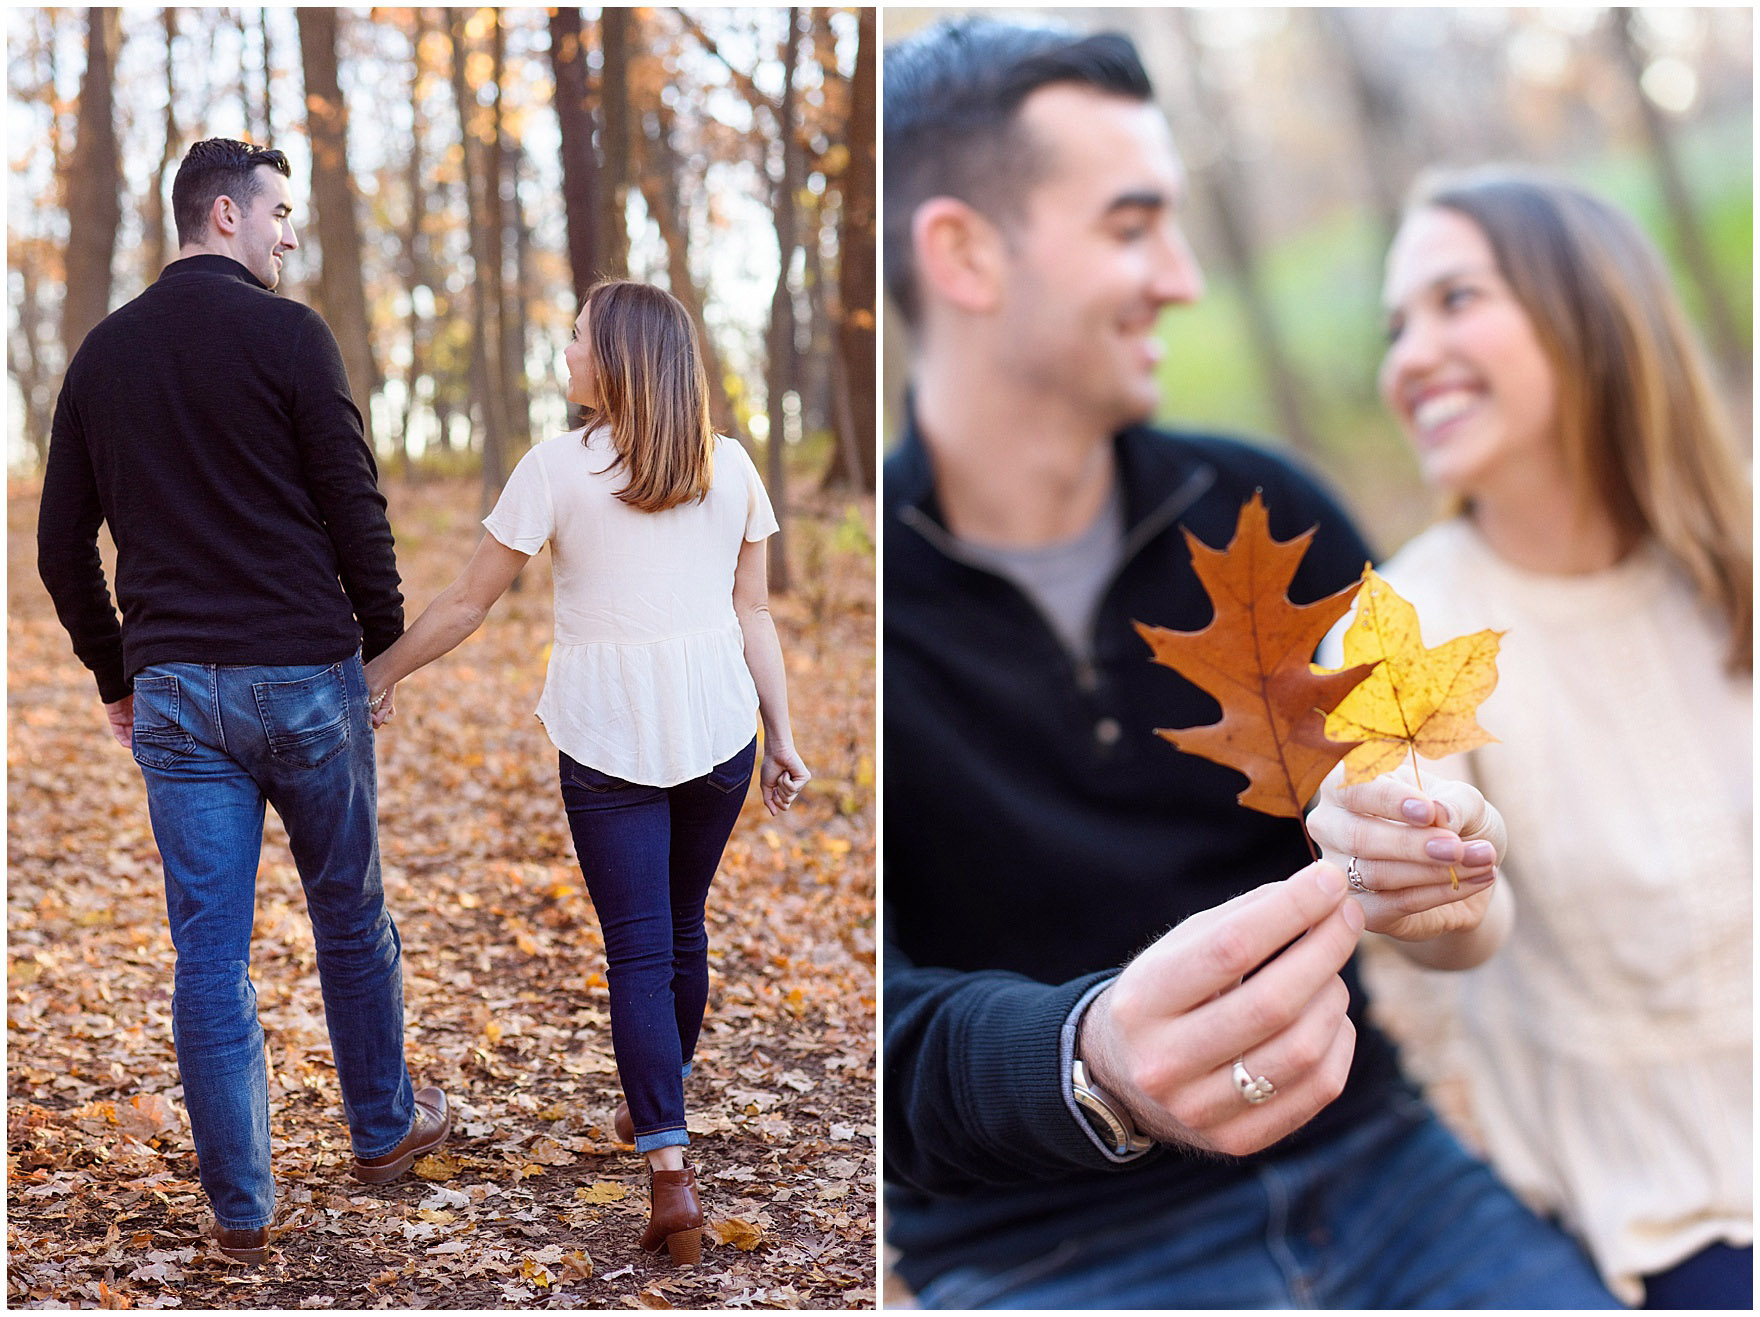 A couple laughs among the leaves during a fall woods engagement session.